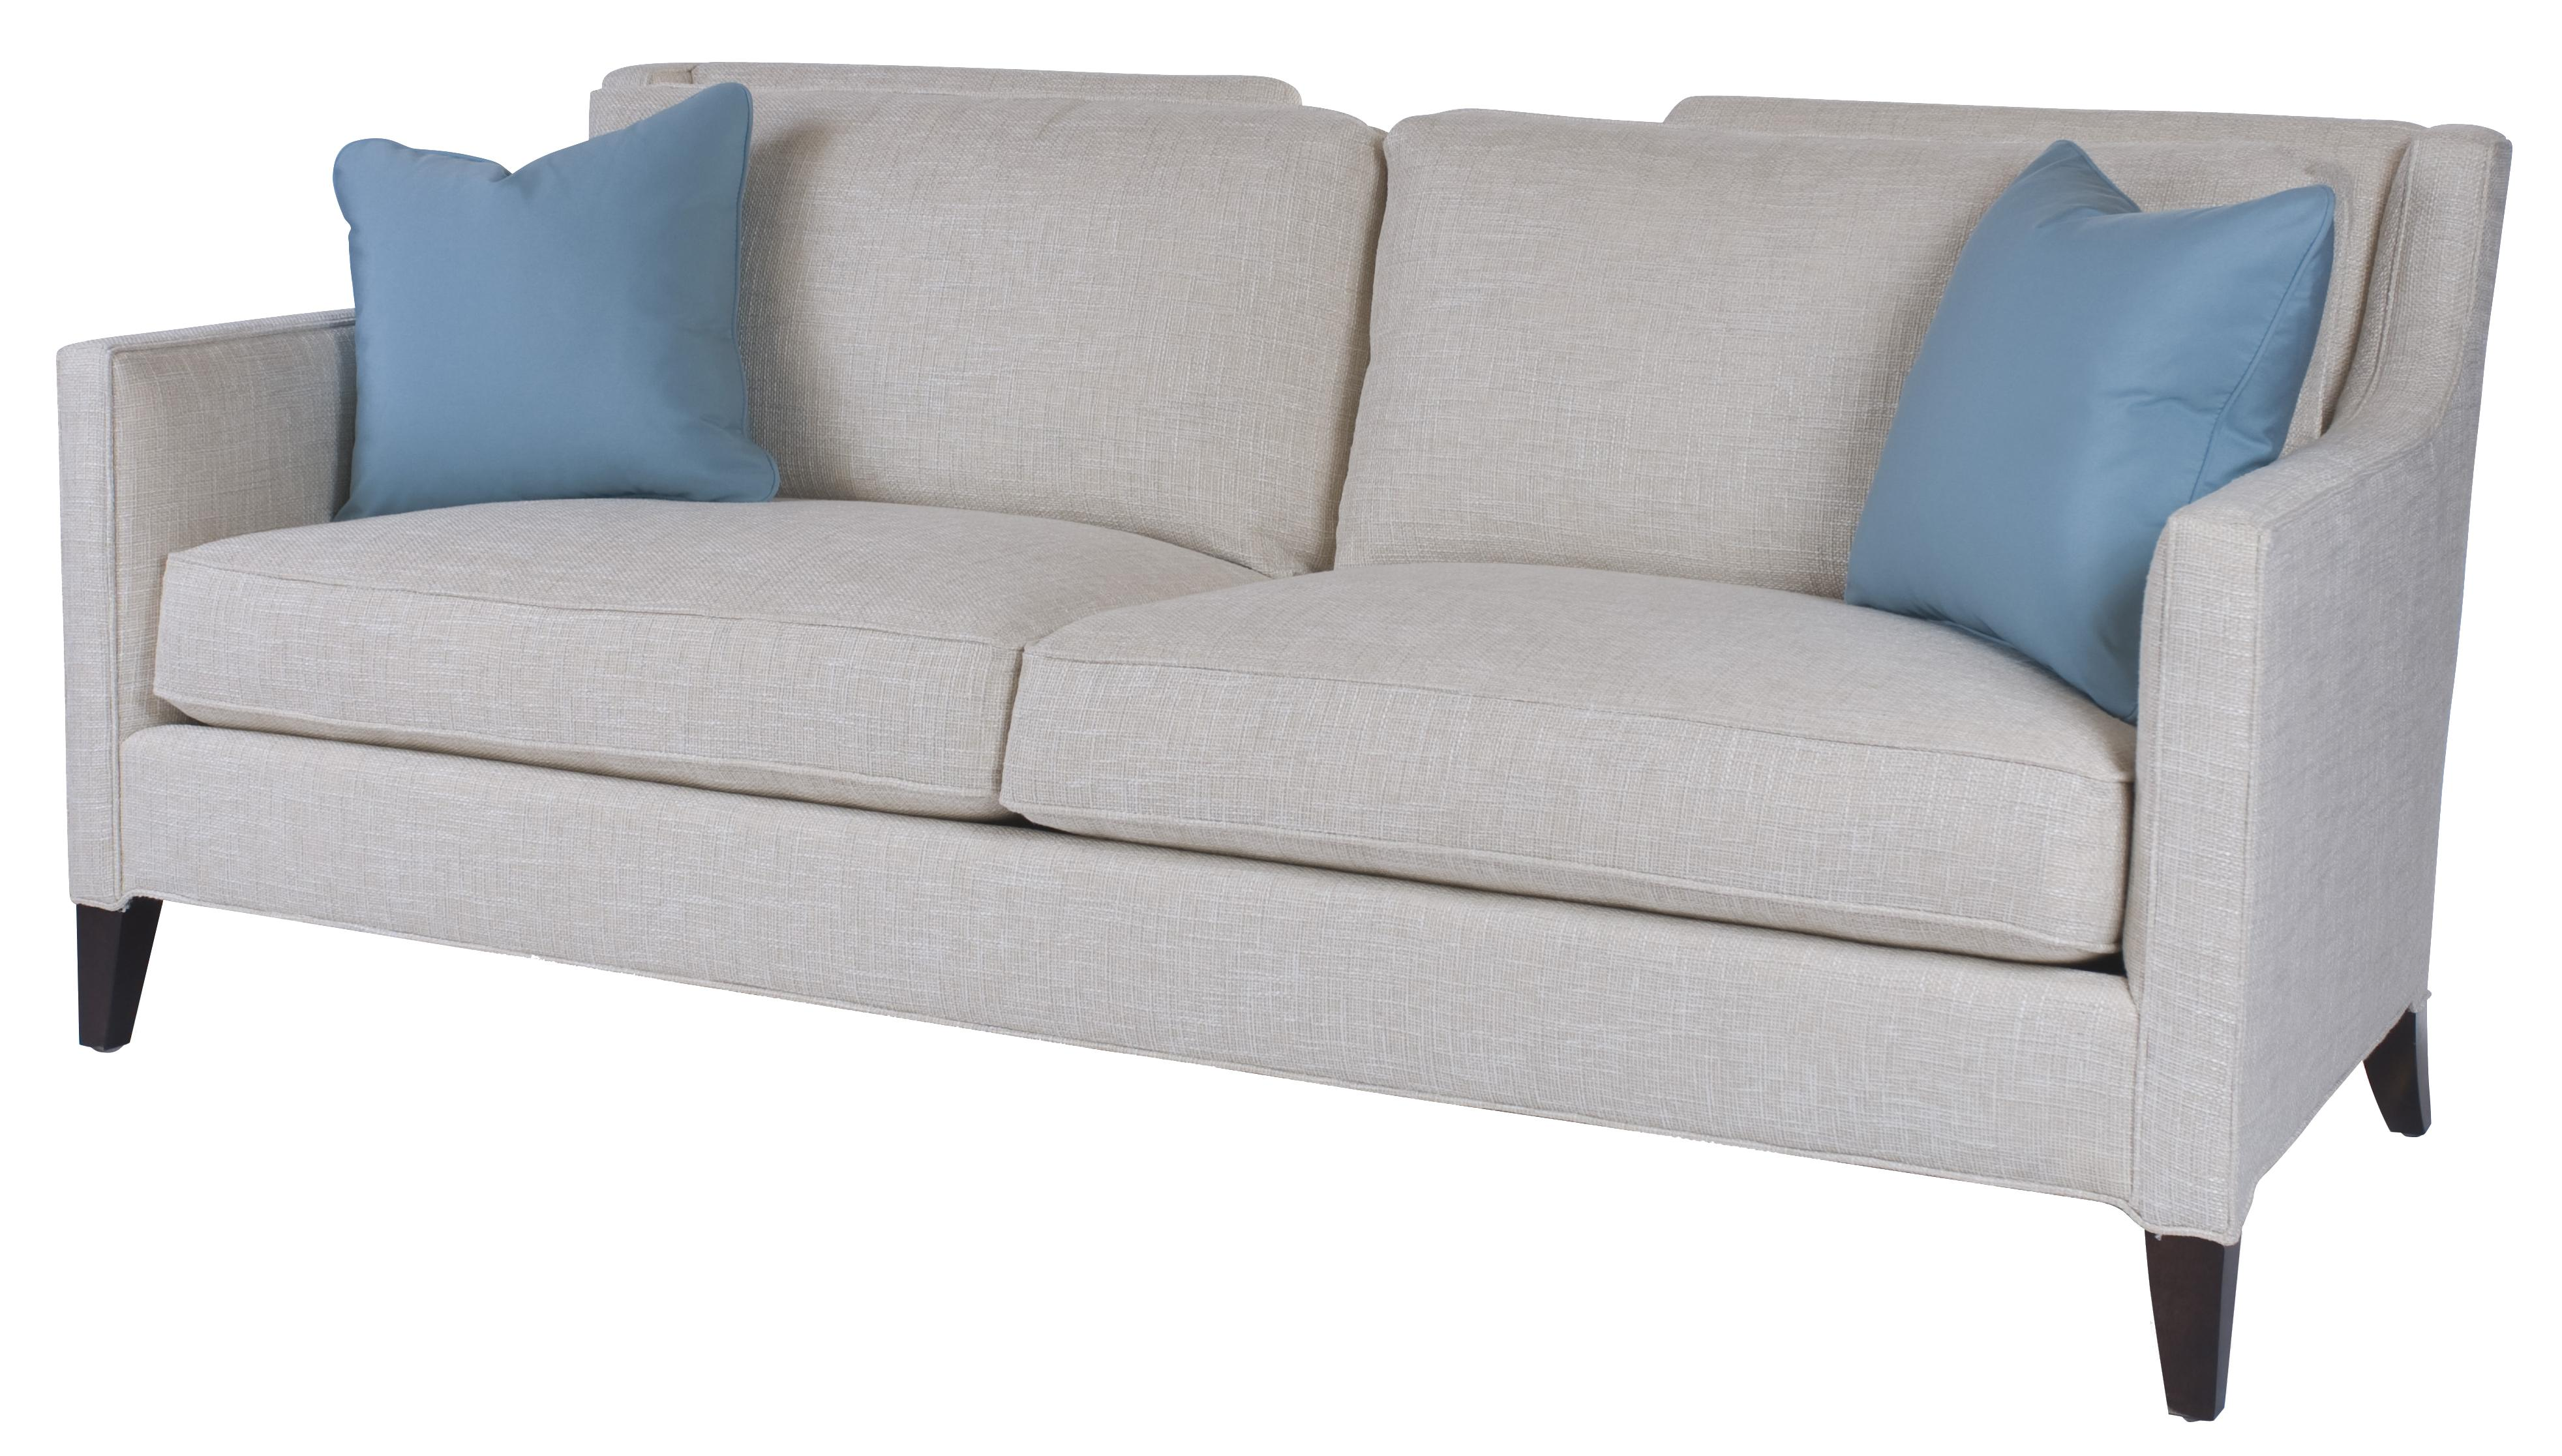 Studio Essentials Upholstery Unique Sofa With Modern Furniture Style By  Century